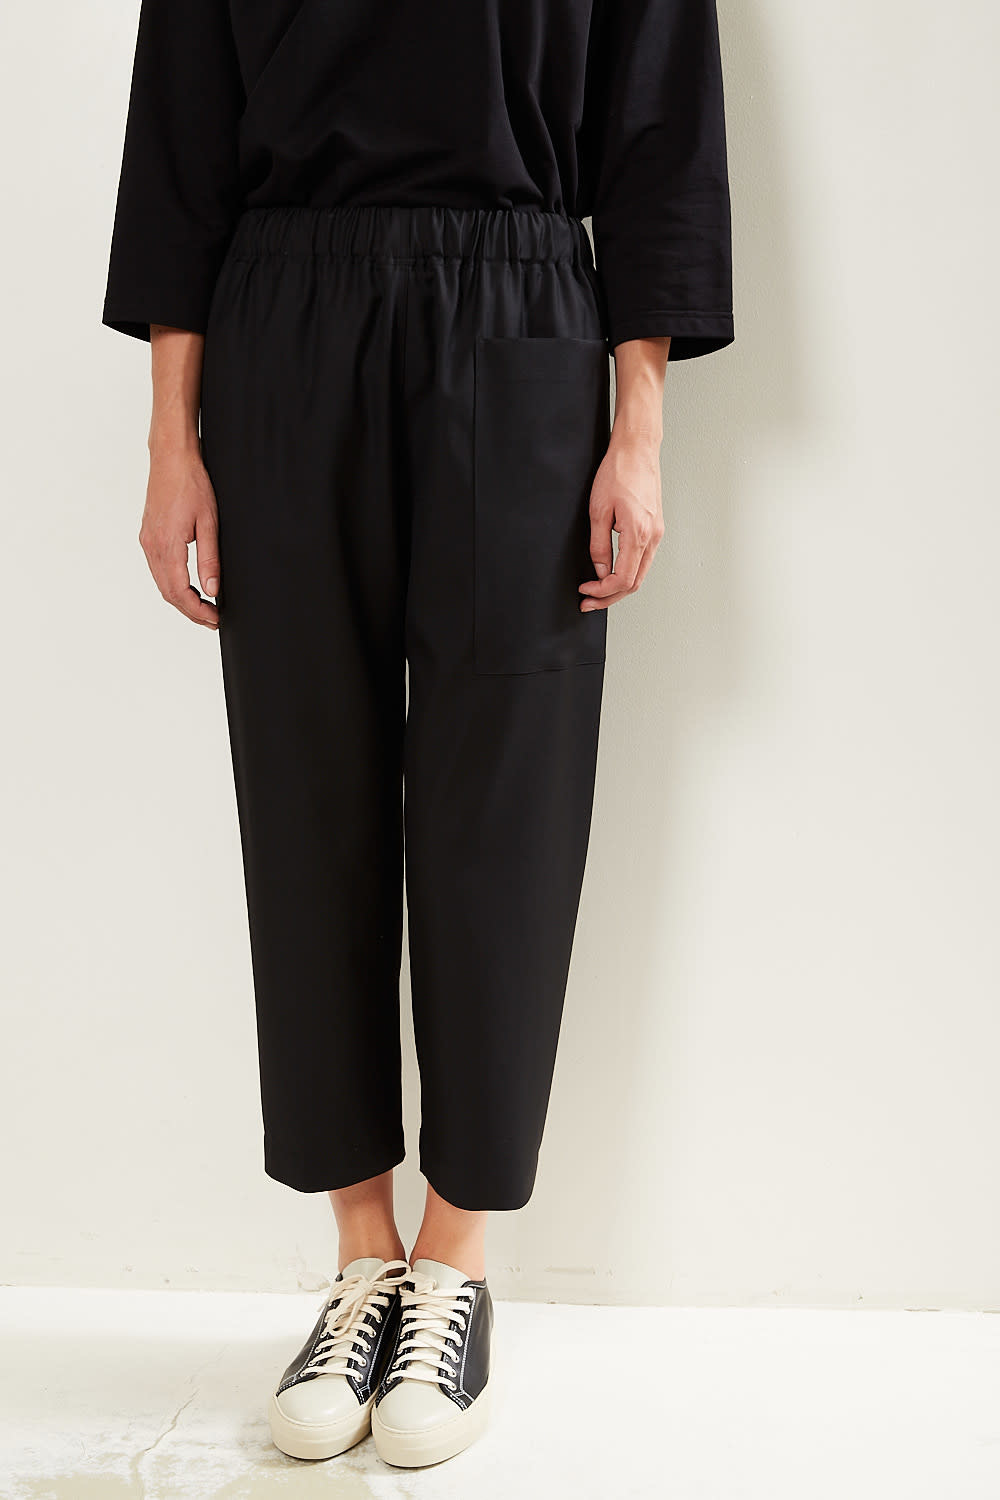 Sofie d'Hoore Punch superfine 110 wool trousers